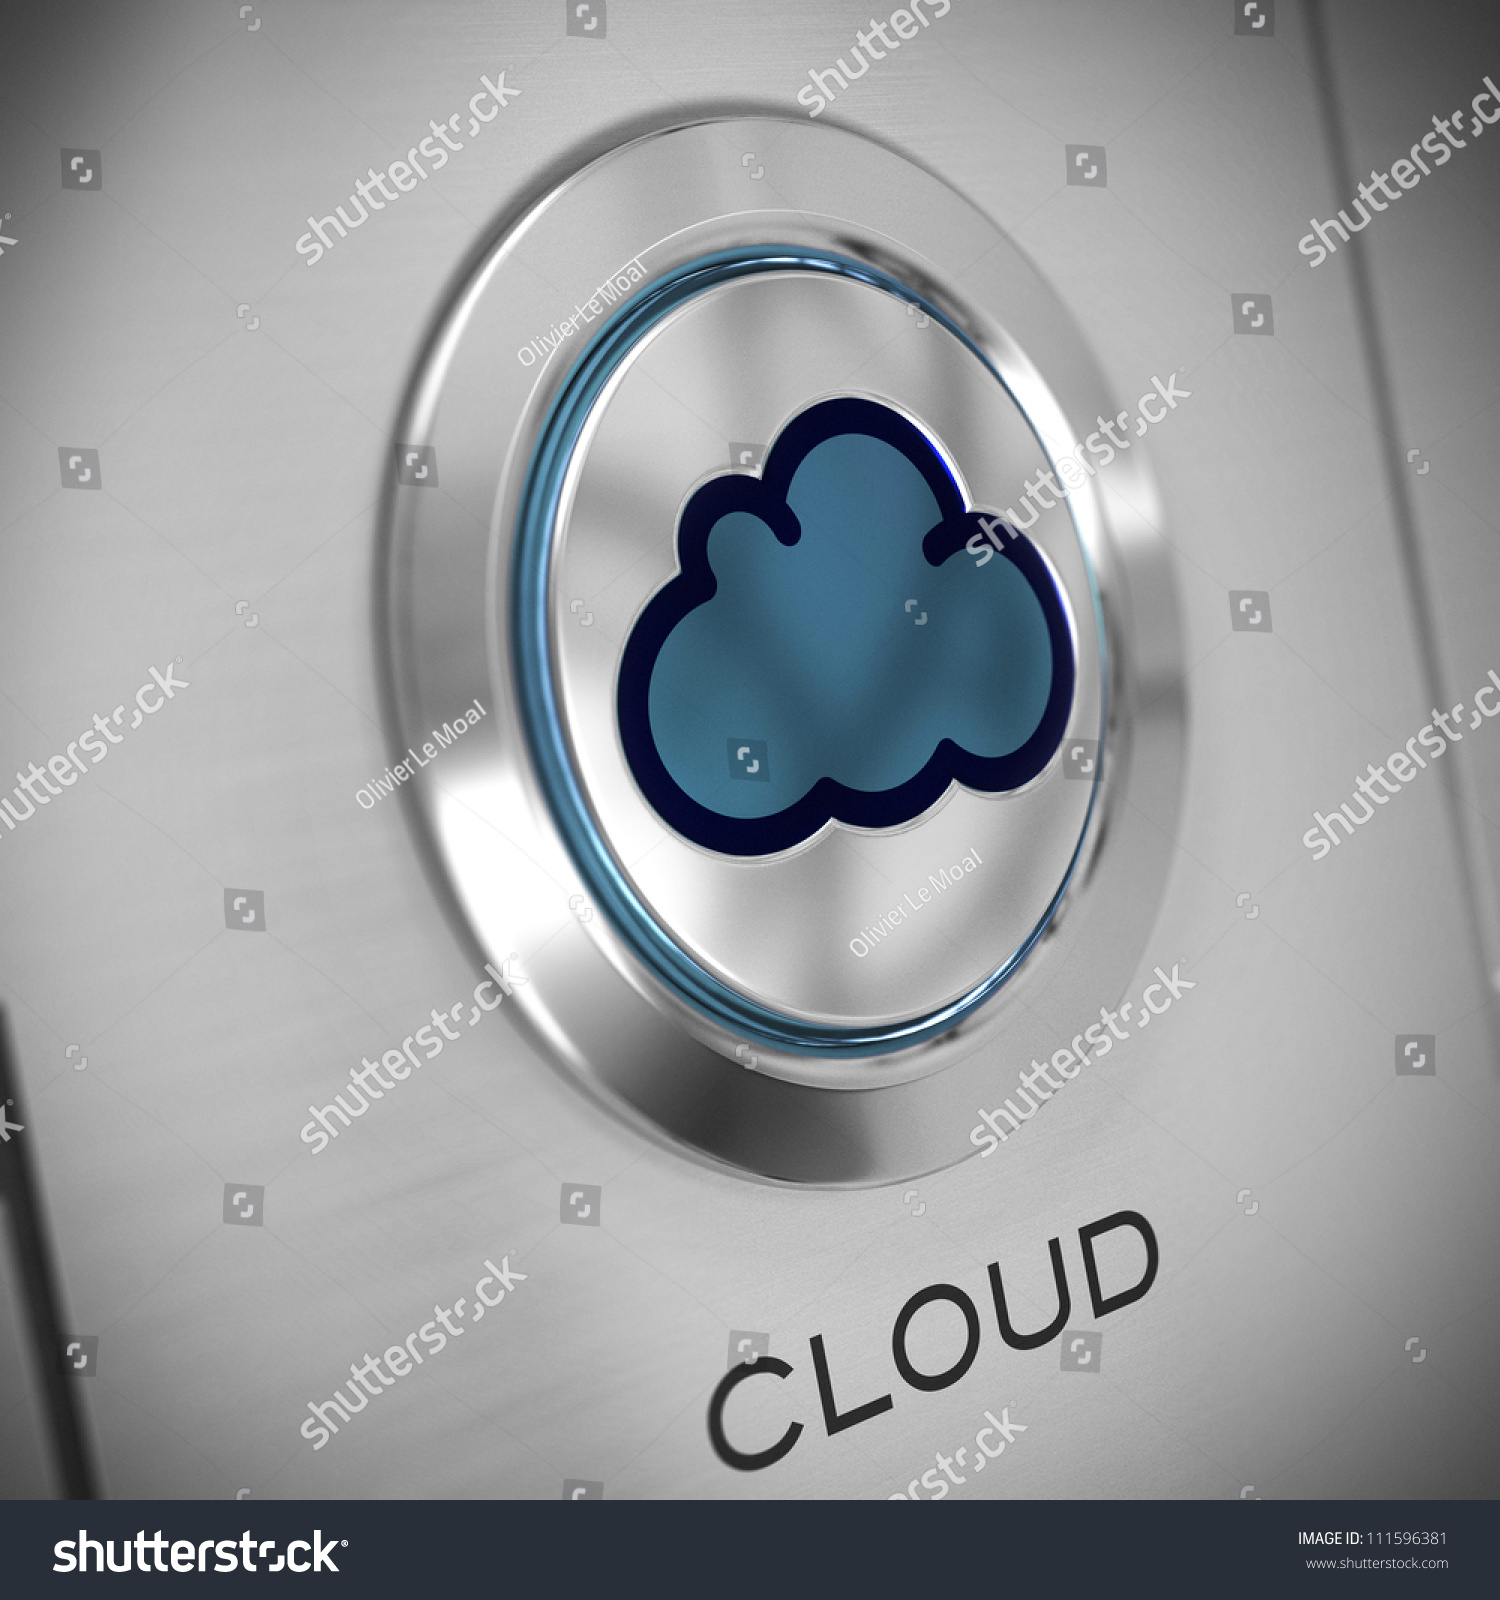 Button cloud symbol center metal background stock illustration button with a cloud symbol in the center metal background blue color the biocorpaavc Gallery